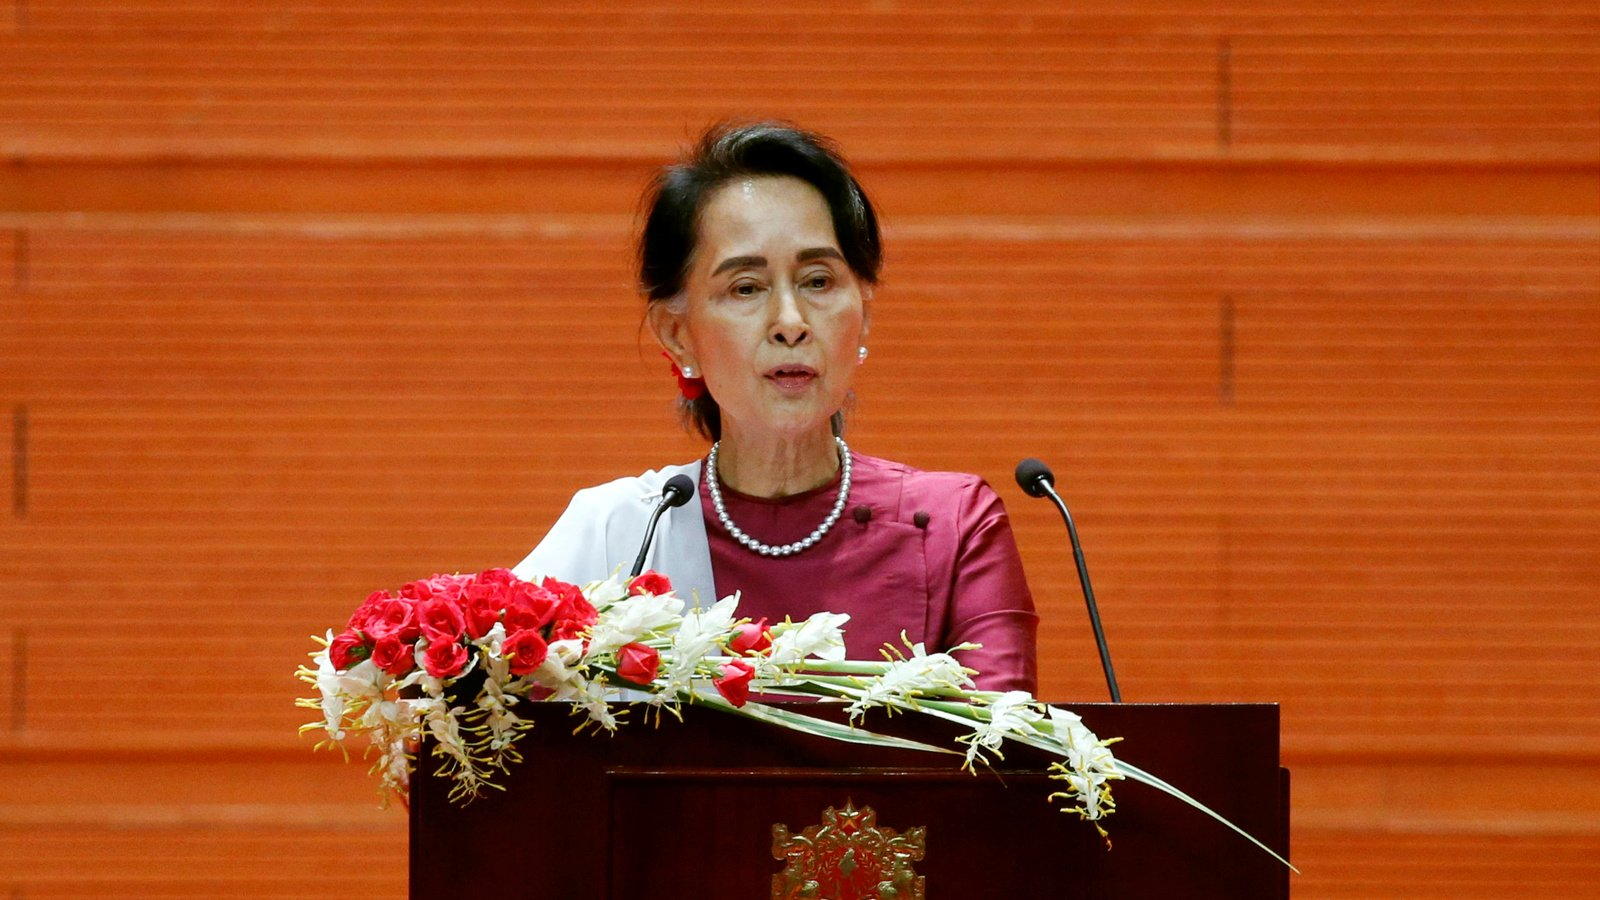 Aiming At China U.S., UK Launch Ethnic Guerilla War On Myanmar – The Greanville Post